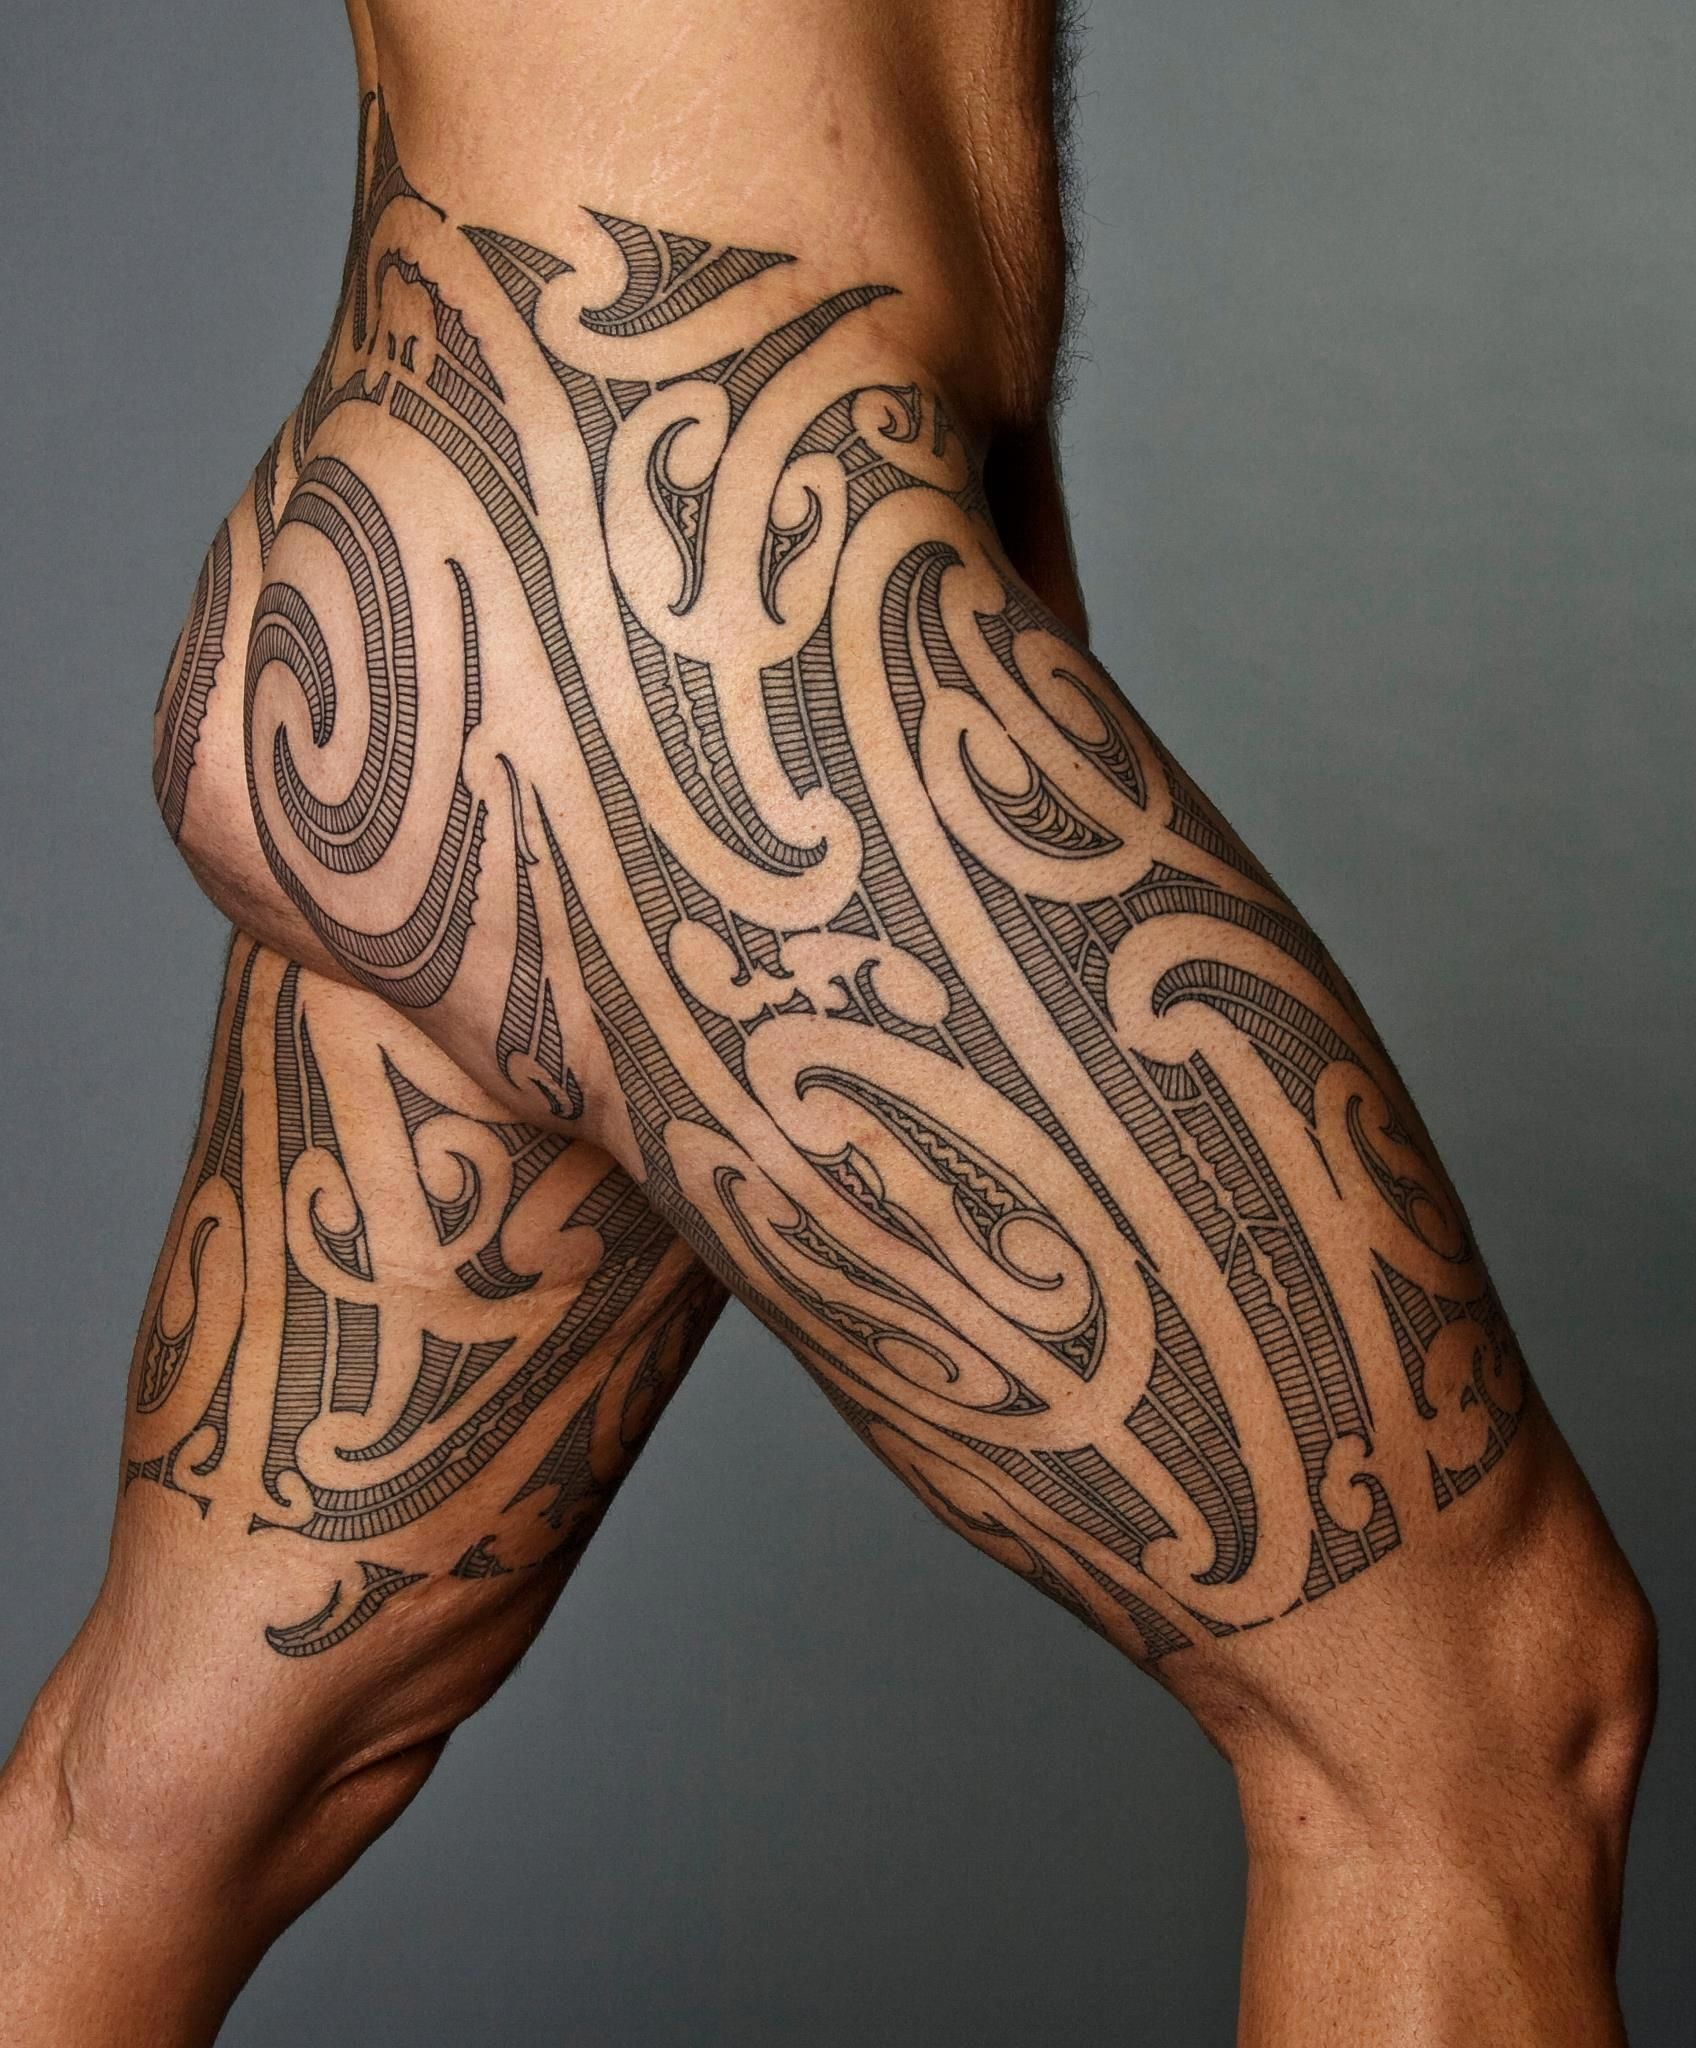 Polynesian Tattoo Artists Uk #Polynesiantattoos (With